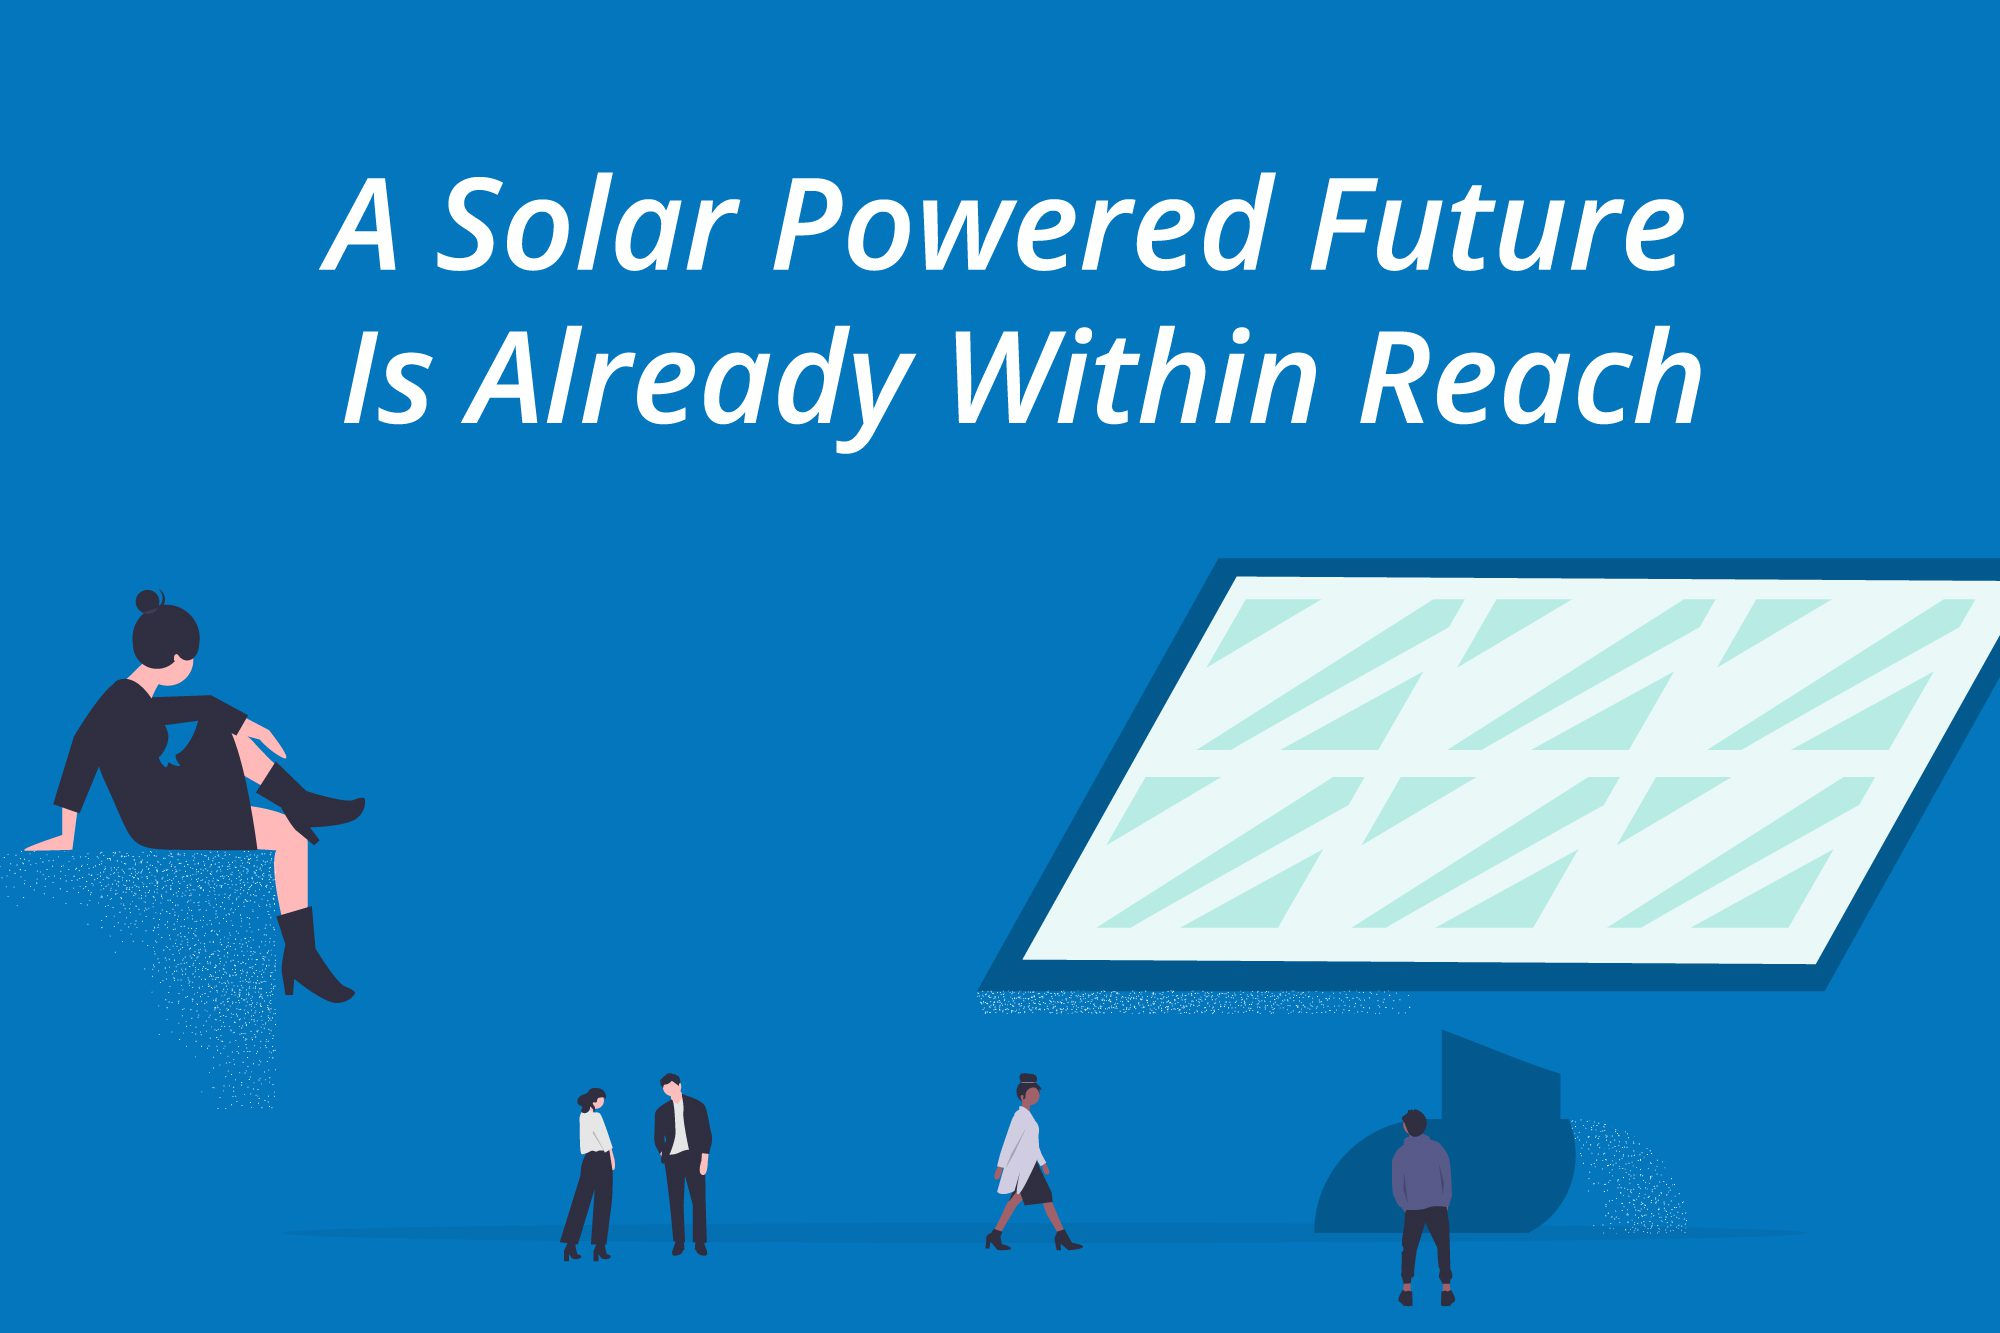 A solar powered future is already within reach